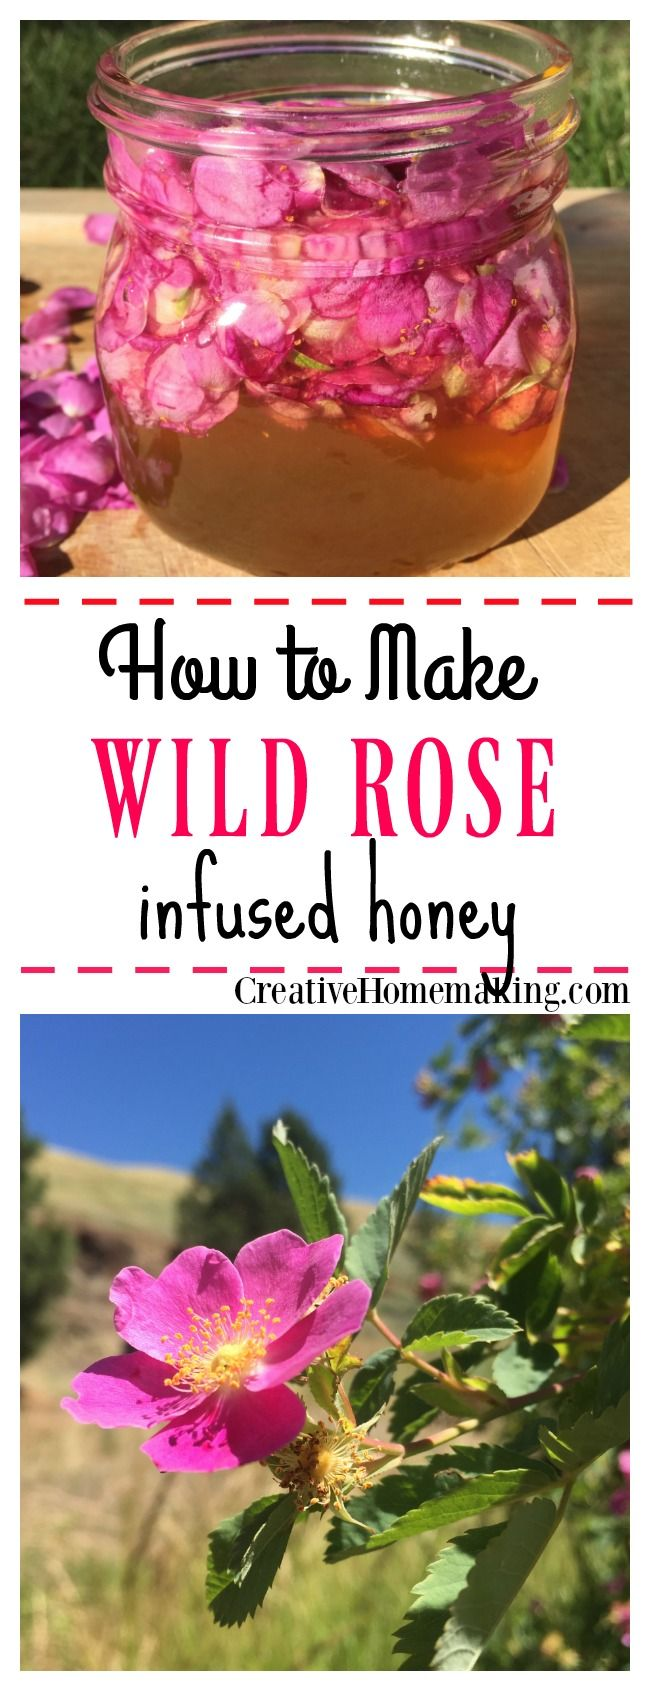 If you have an abundance of wild roses, try this easy wild rose infused honey recipe. Lightly flavored and scented, this gourmet honey makes a great gift idea for family and friends!